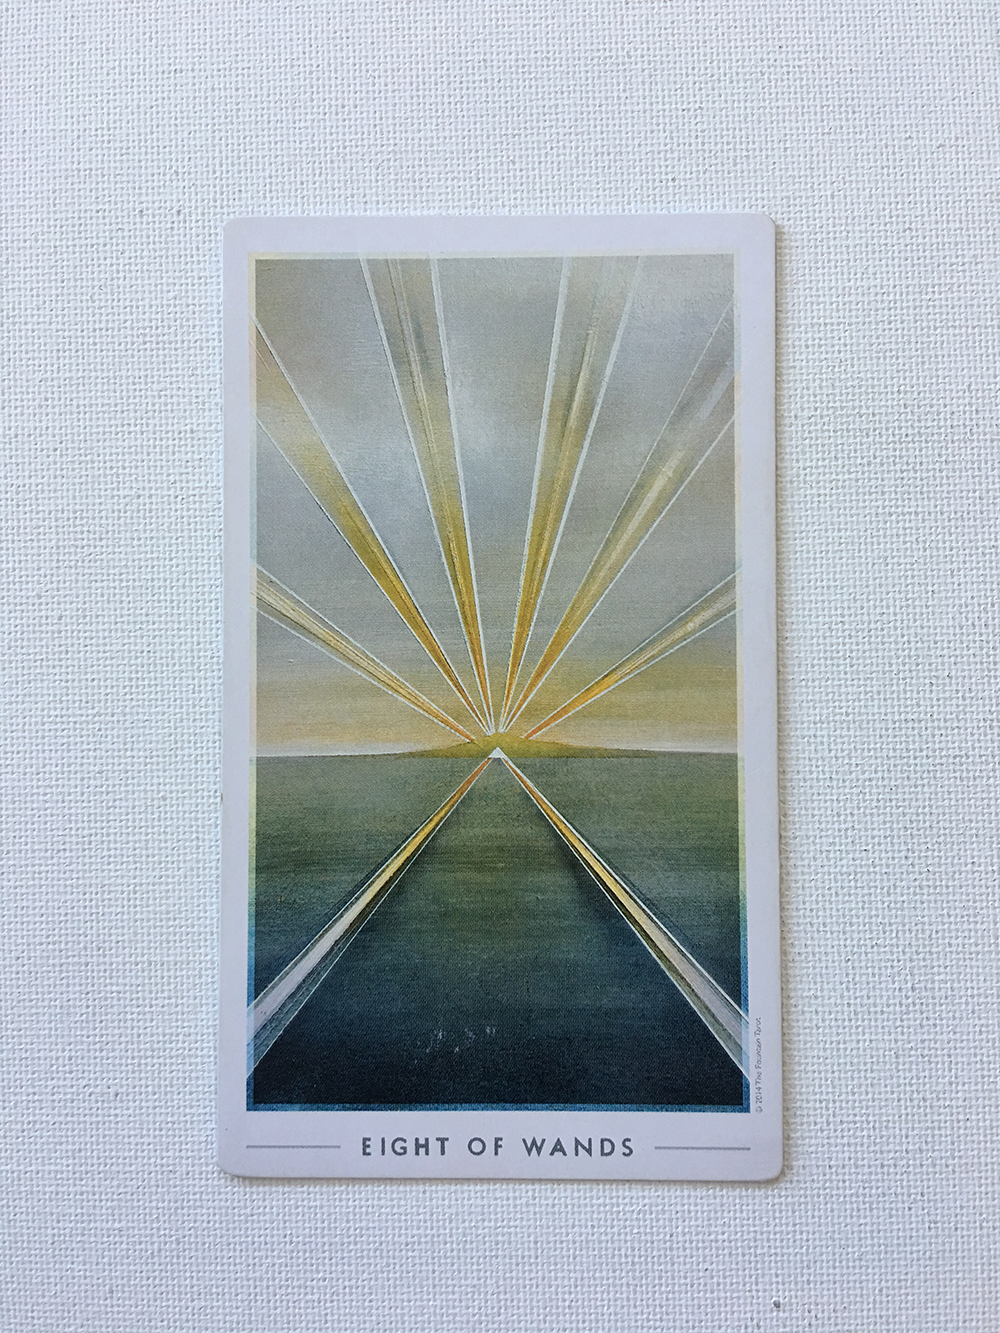 Eight of Wands.